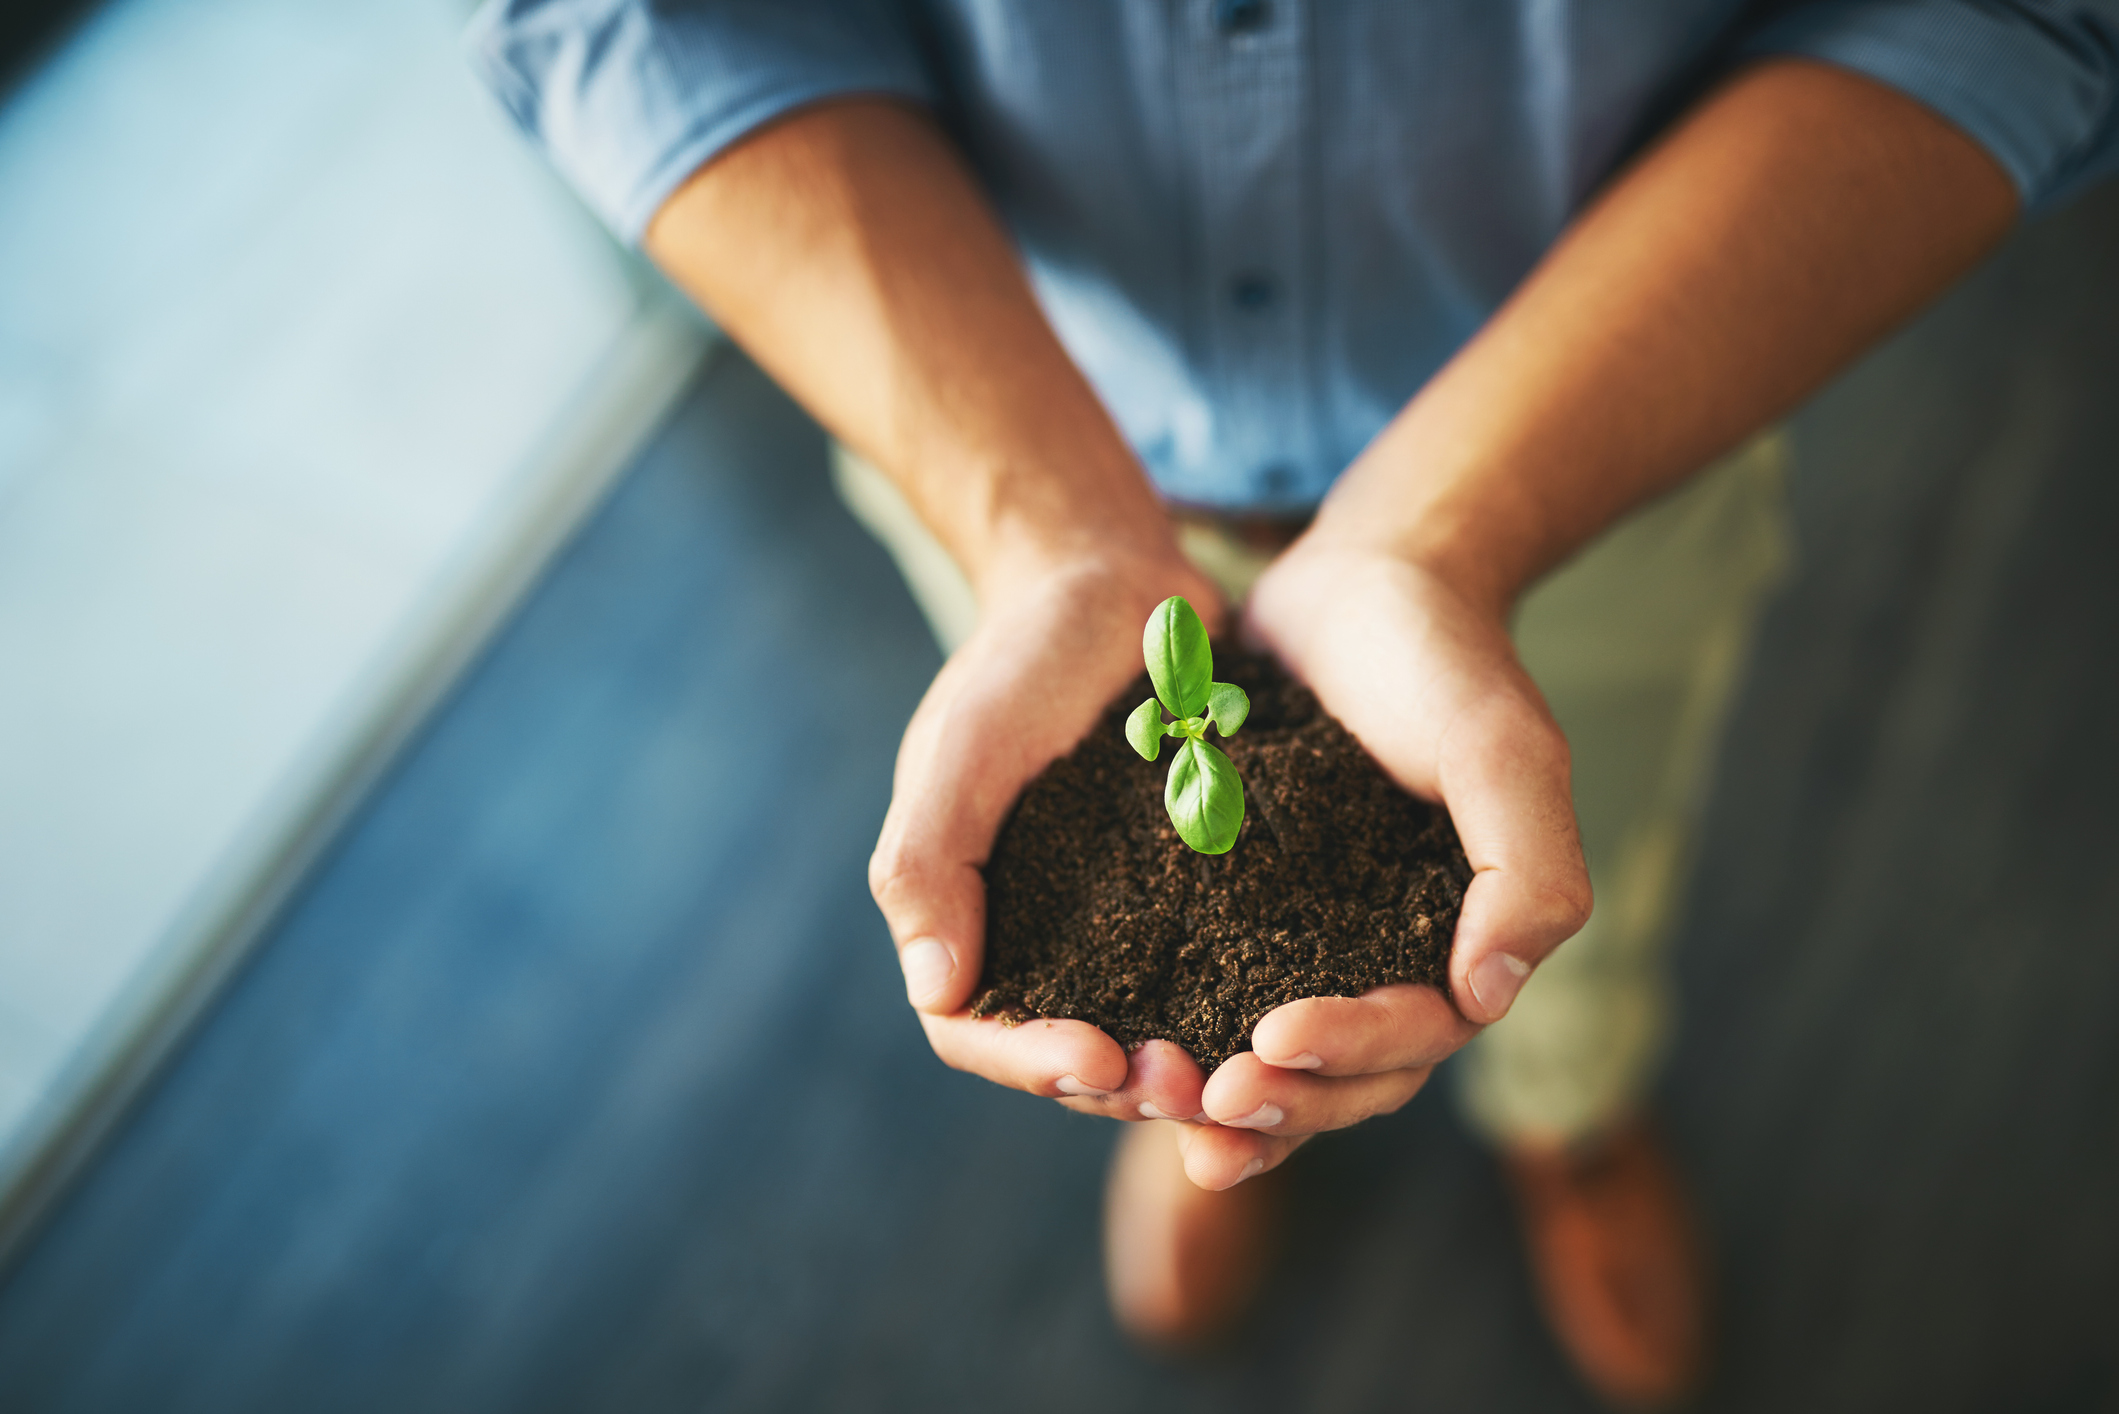 businessman holding a plant growing out of soil